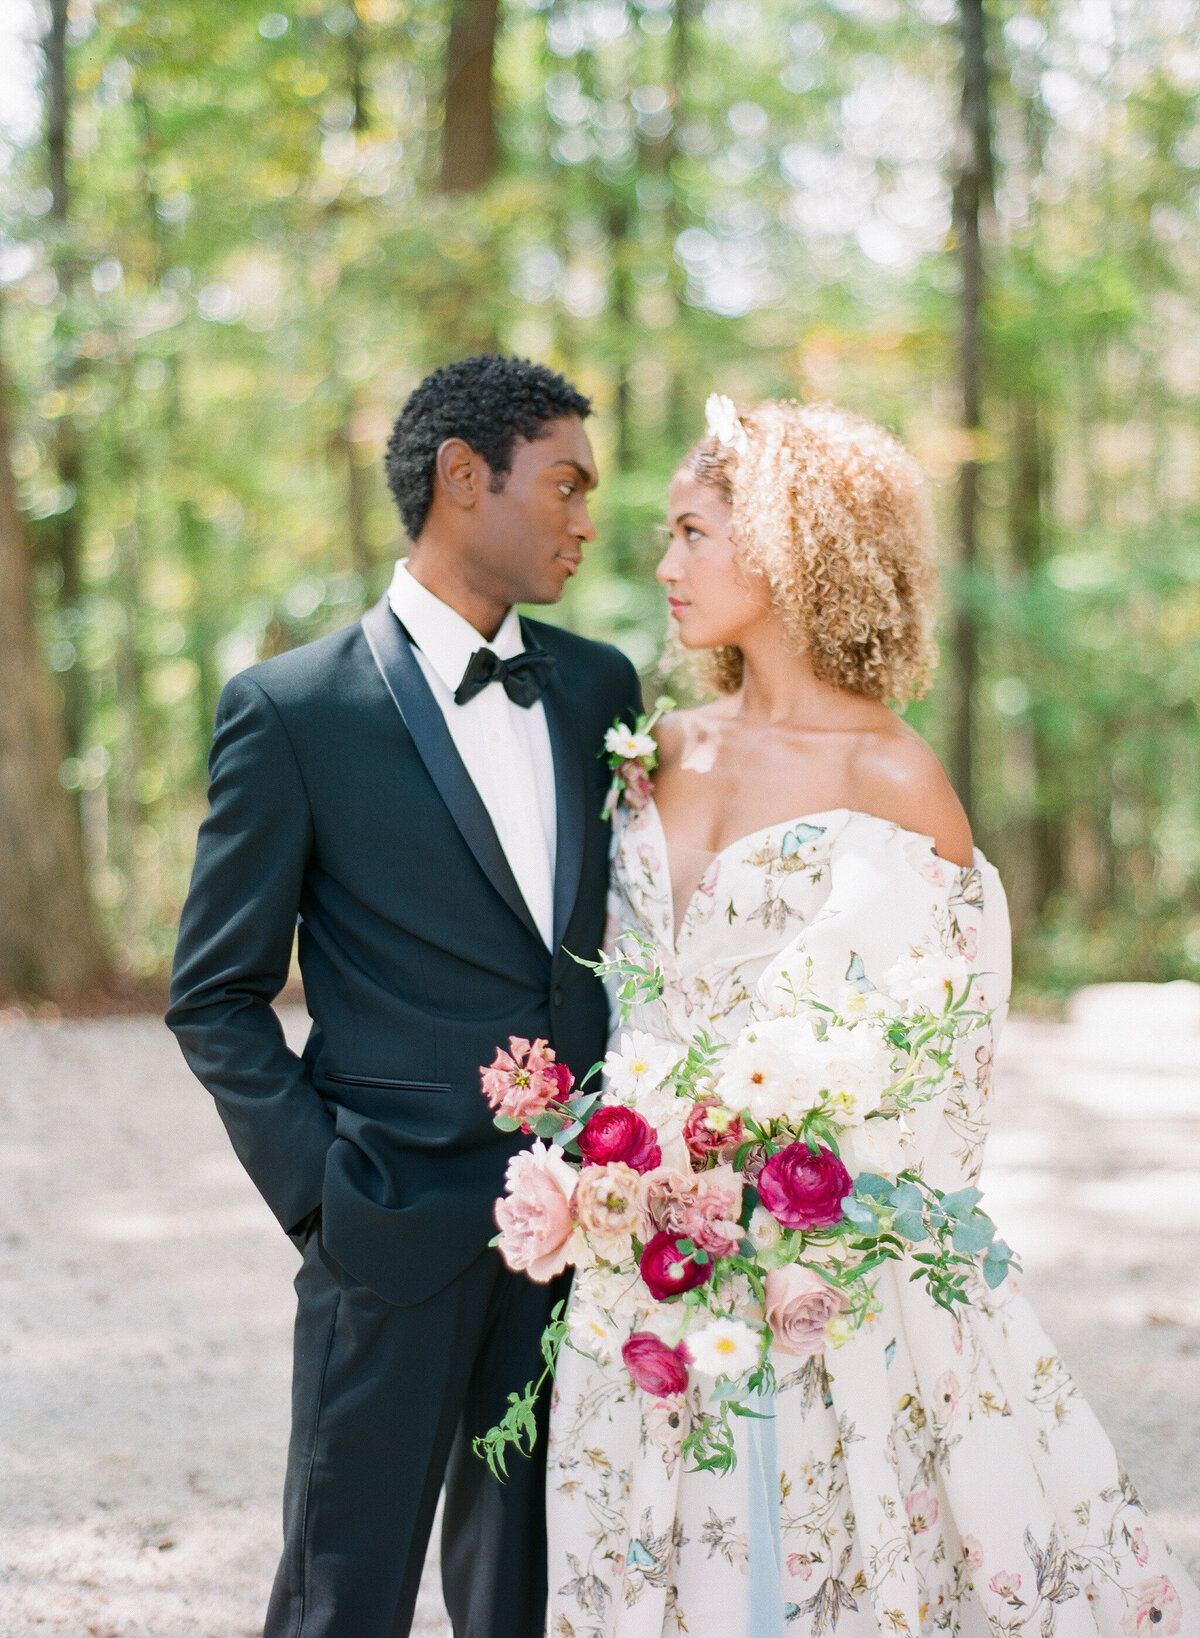 Carolina Grove Monet Inspired Wedding Photography, North-Carolina 8